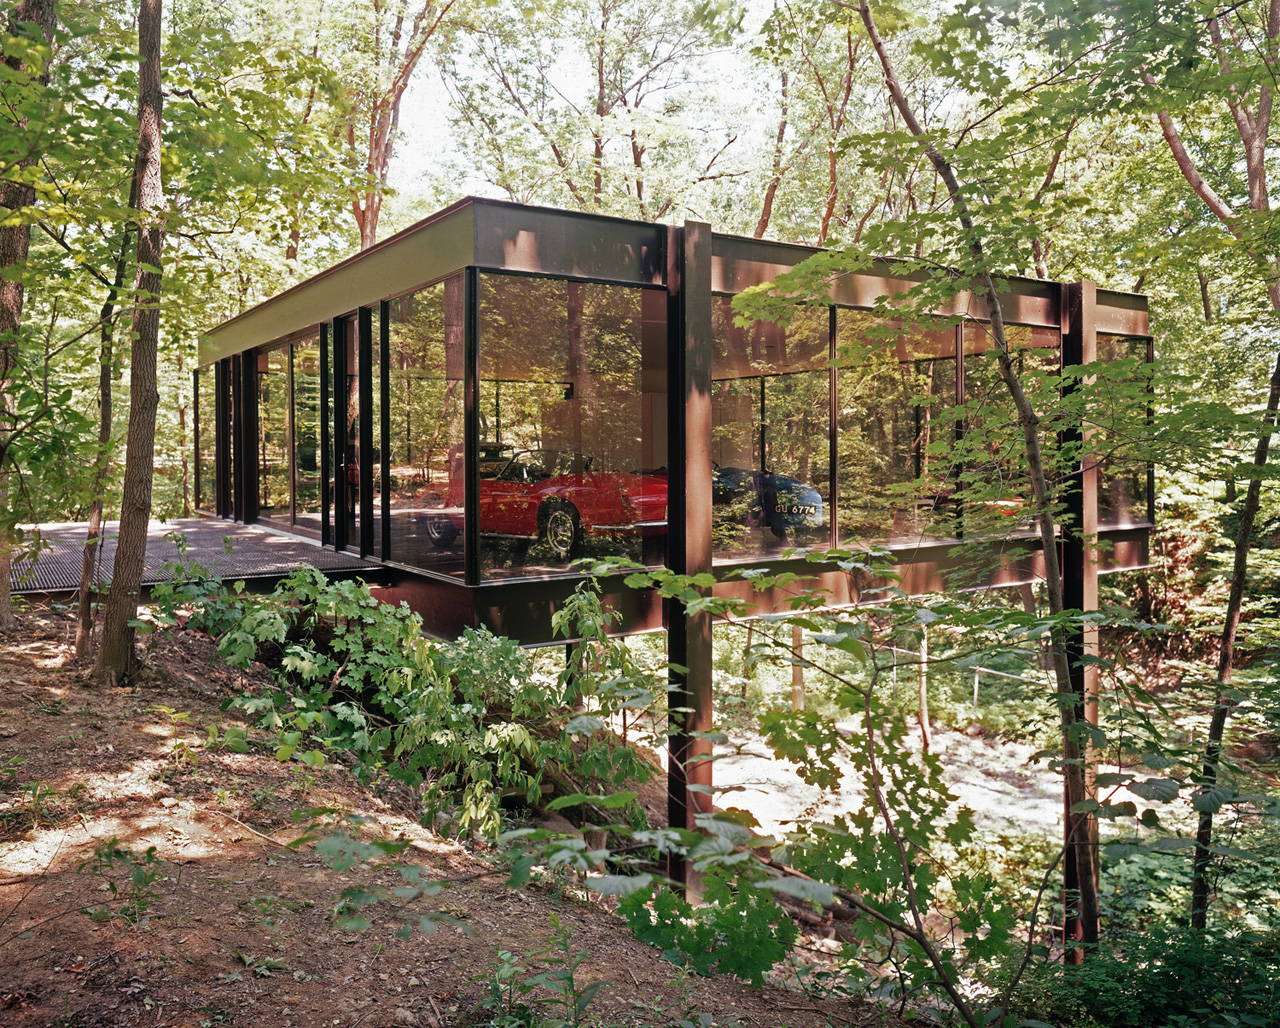 THESE ARE THE MOST FAMOUS MOVIE HOME DESIGNS OF ALL TIME movie home THESE ARE THE MOST FAMOUS MOVIE HOME DESIGNS OF ALL TIME THESE ARE THE BEST MOVIE HOME DESIGN IDEAS OF ALL TIME 1